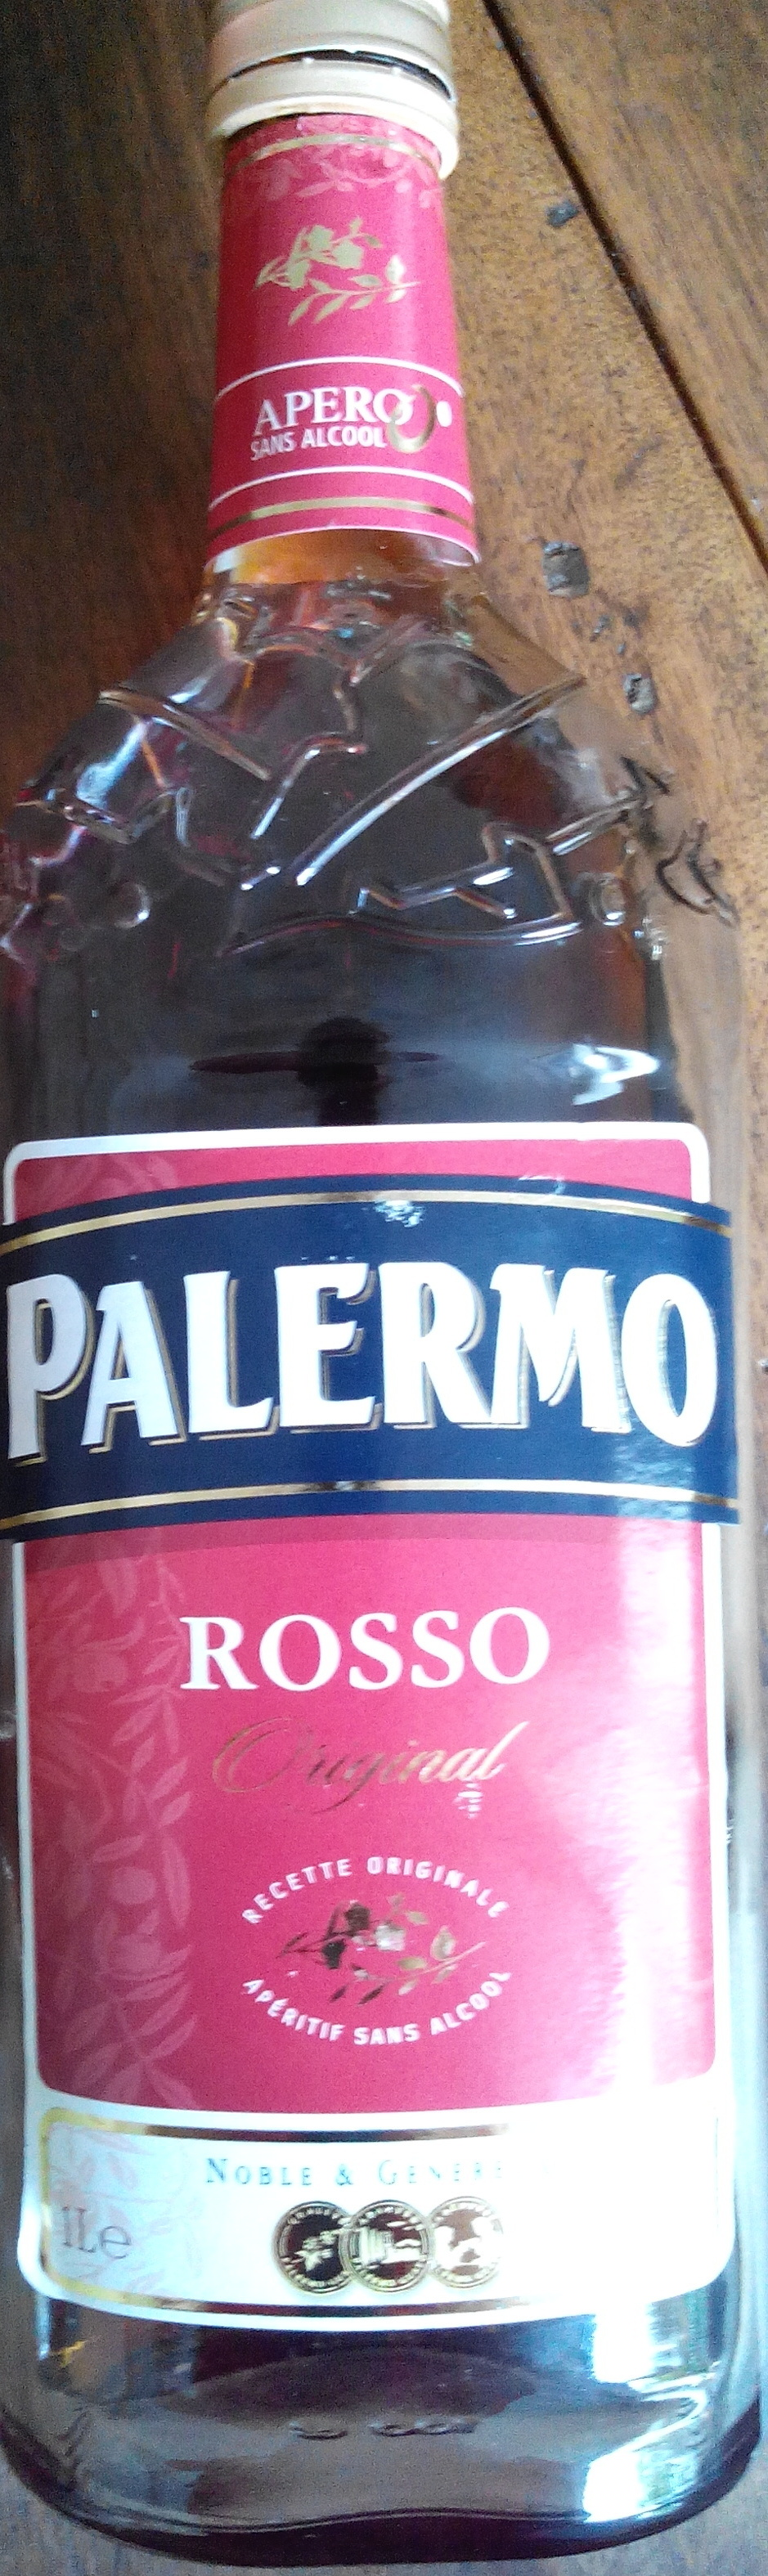 Palermo Rosso - Product